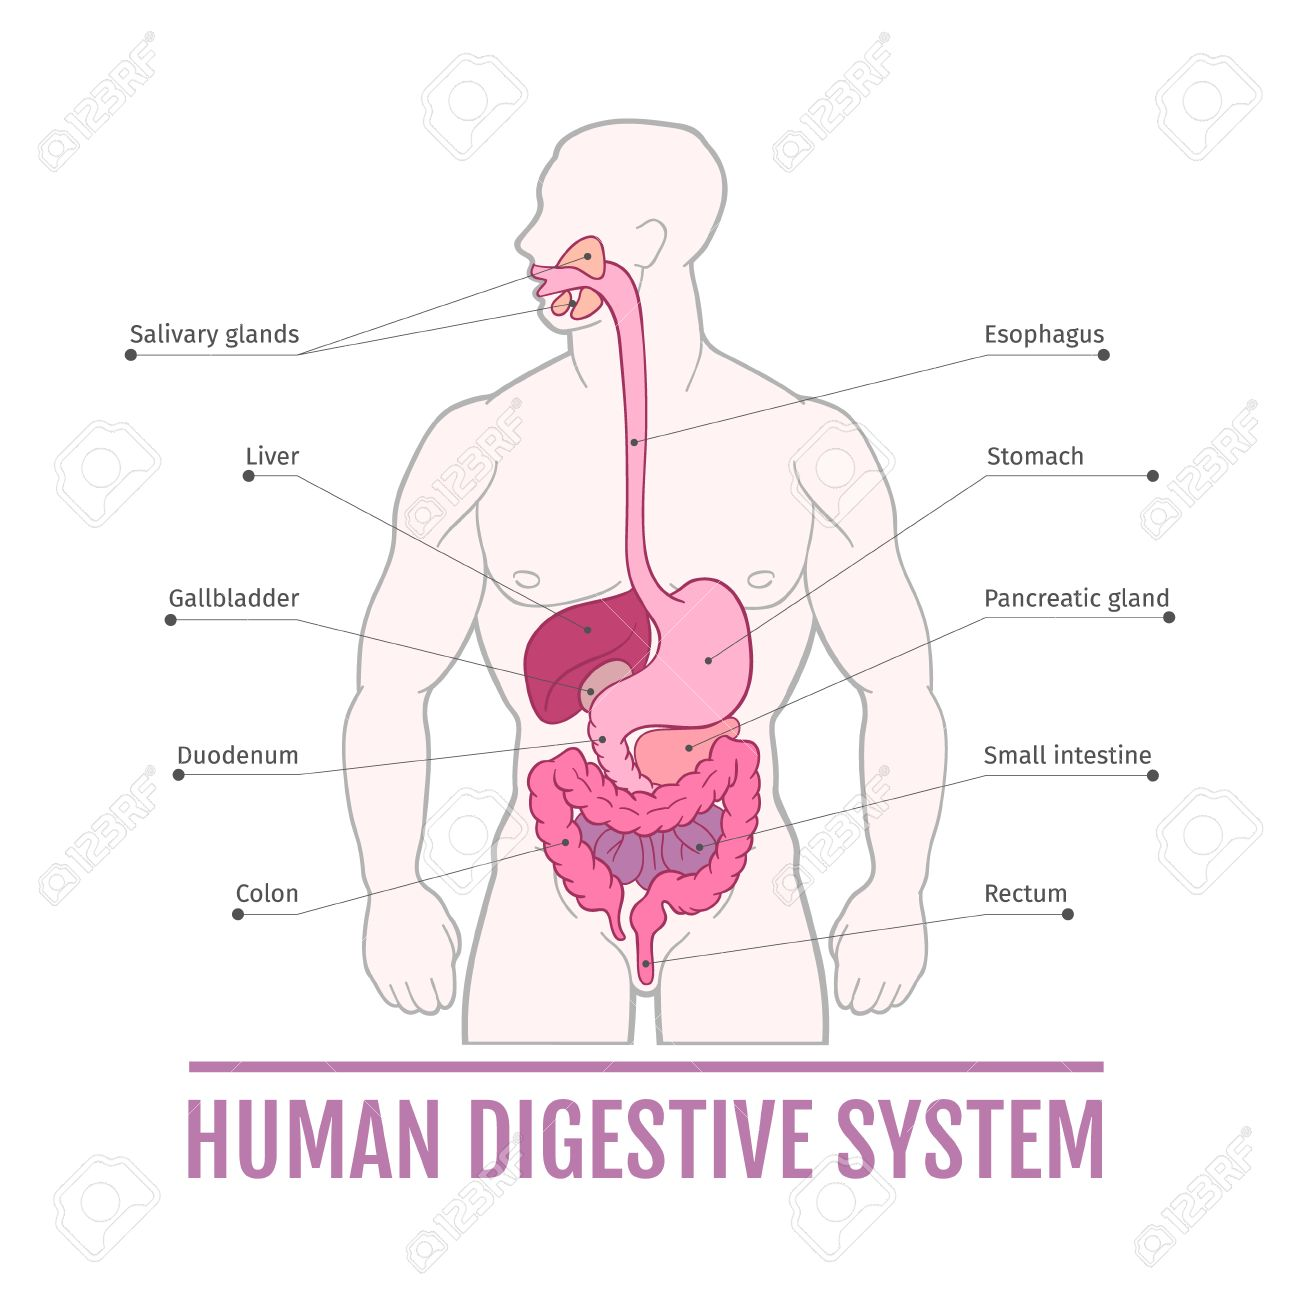 Medical illustration of the human digestive system scheme for medical illustration of the human digestive system scheme for textbooks internal organs stock ccuart Choice Image